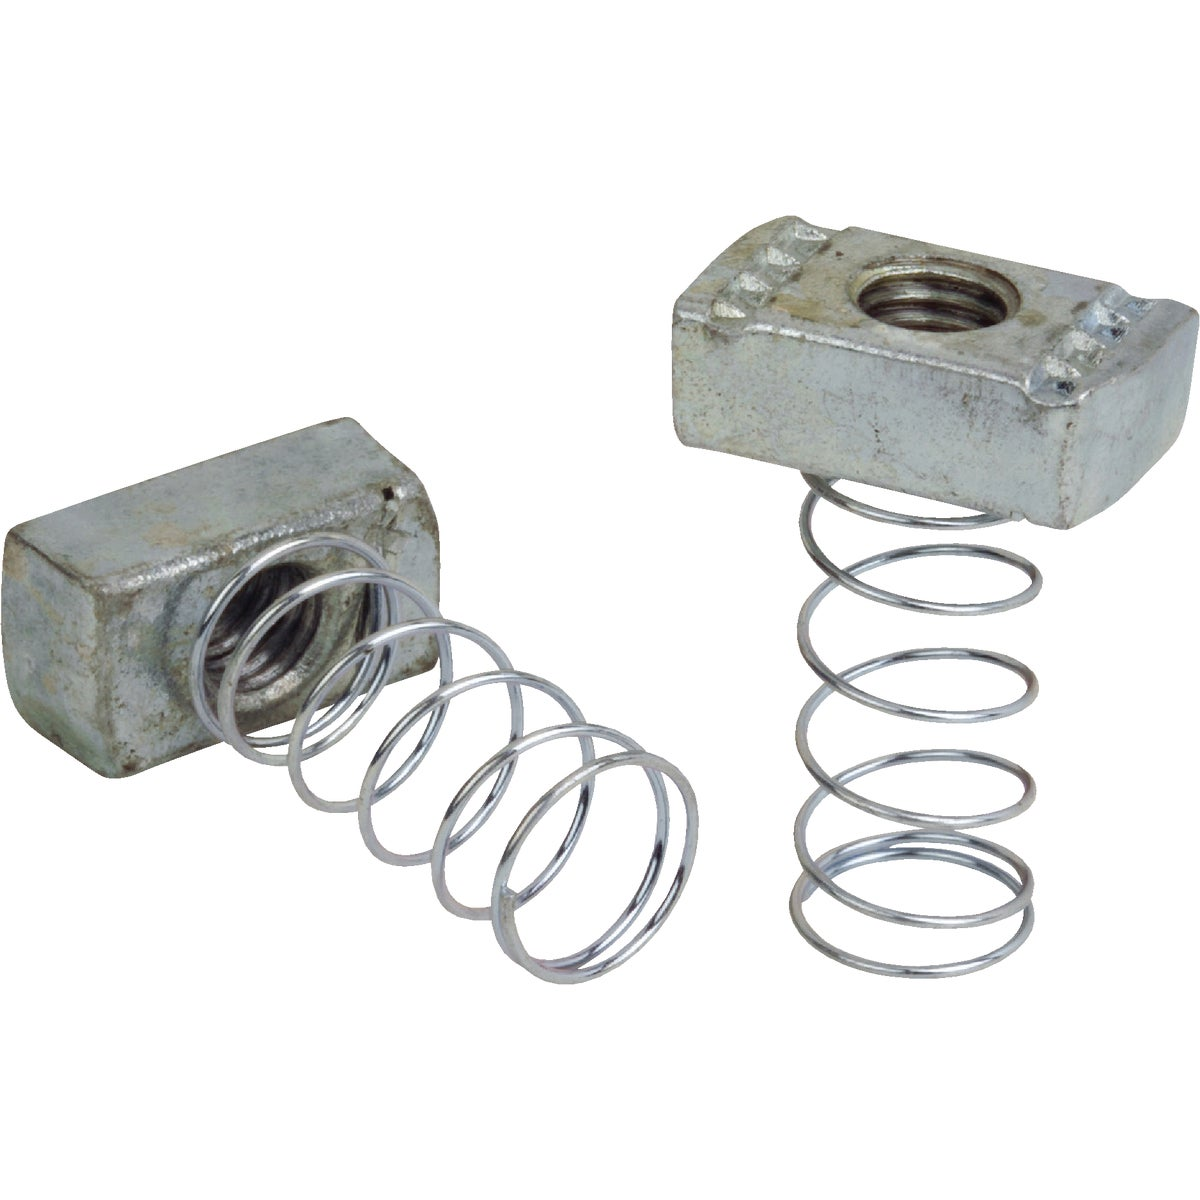 "5PC 1/2"" SPRING NUT - ZA100-1/2EG-10 by Thomas & Betts"